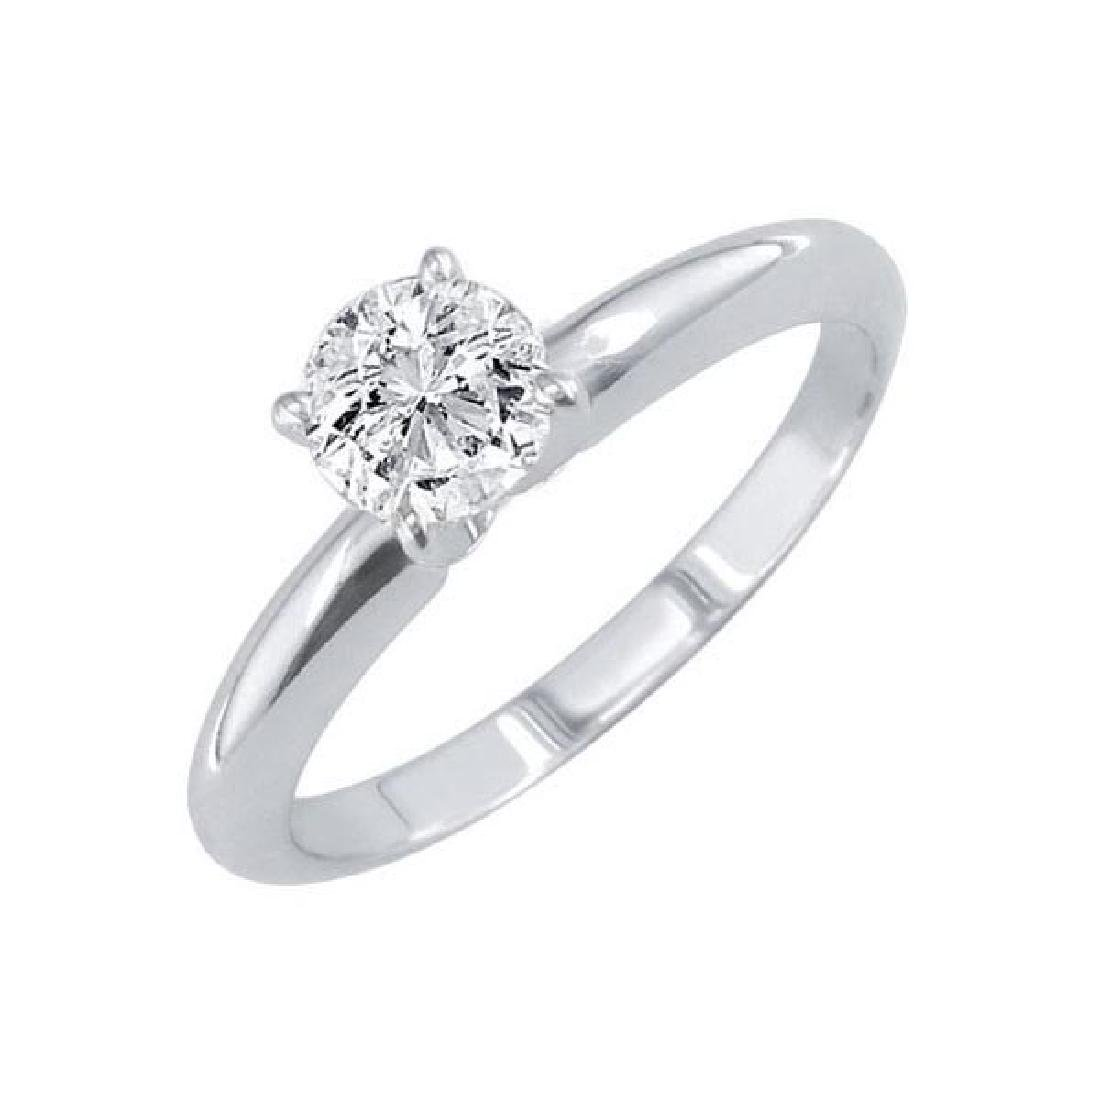 Certified 1.16 CTW Round Diamond Solitaire 14k Ring I/S